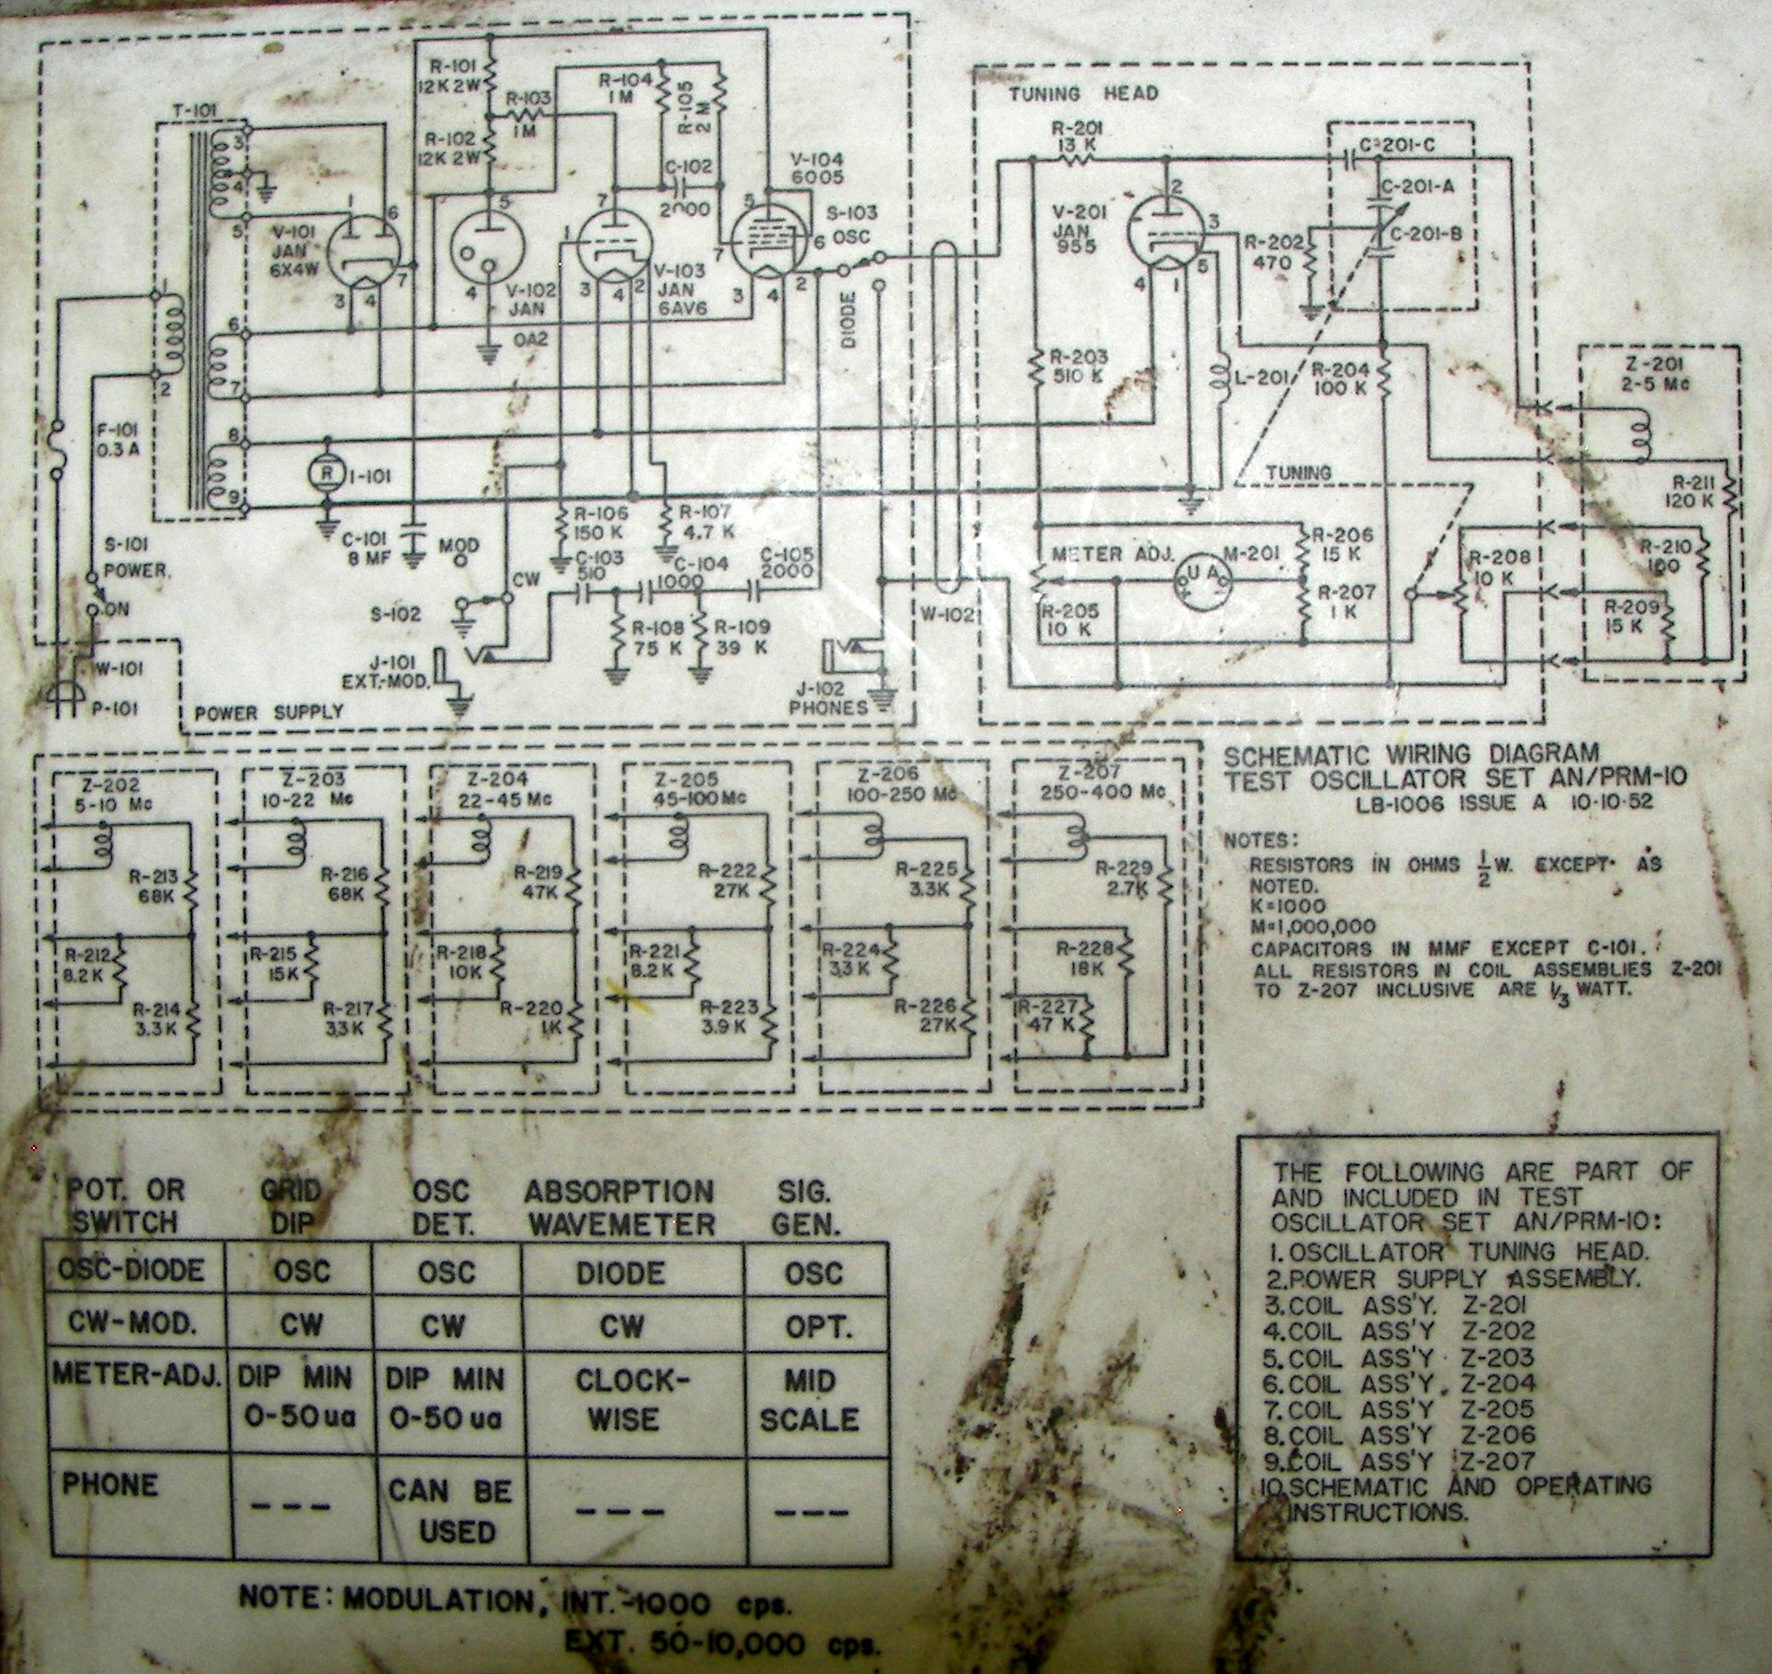 Bunker Of Doom 8 Welcome Fm Transmitter Schematic Free Download Wiring Diagram Manual And An Prm 10 Test Oscillator Set Covering 2 400mhz